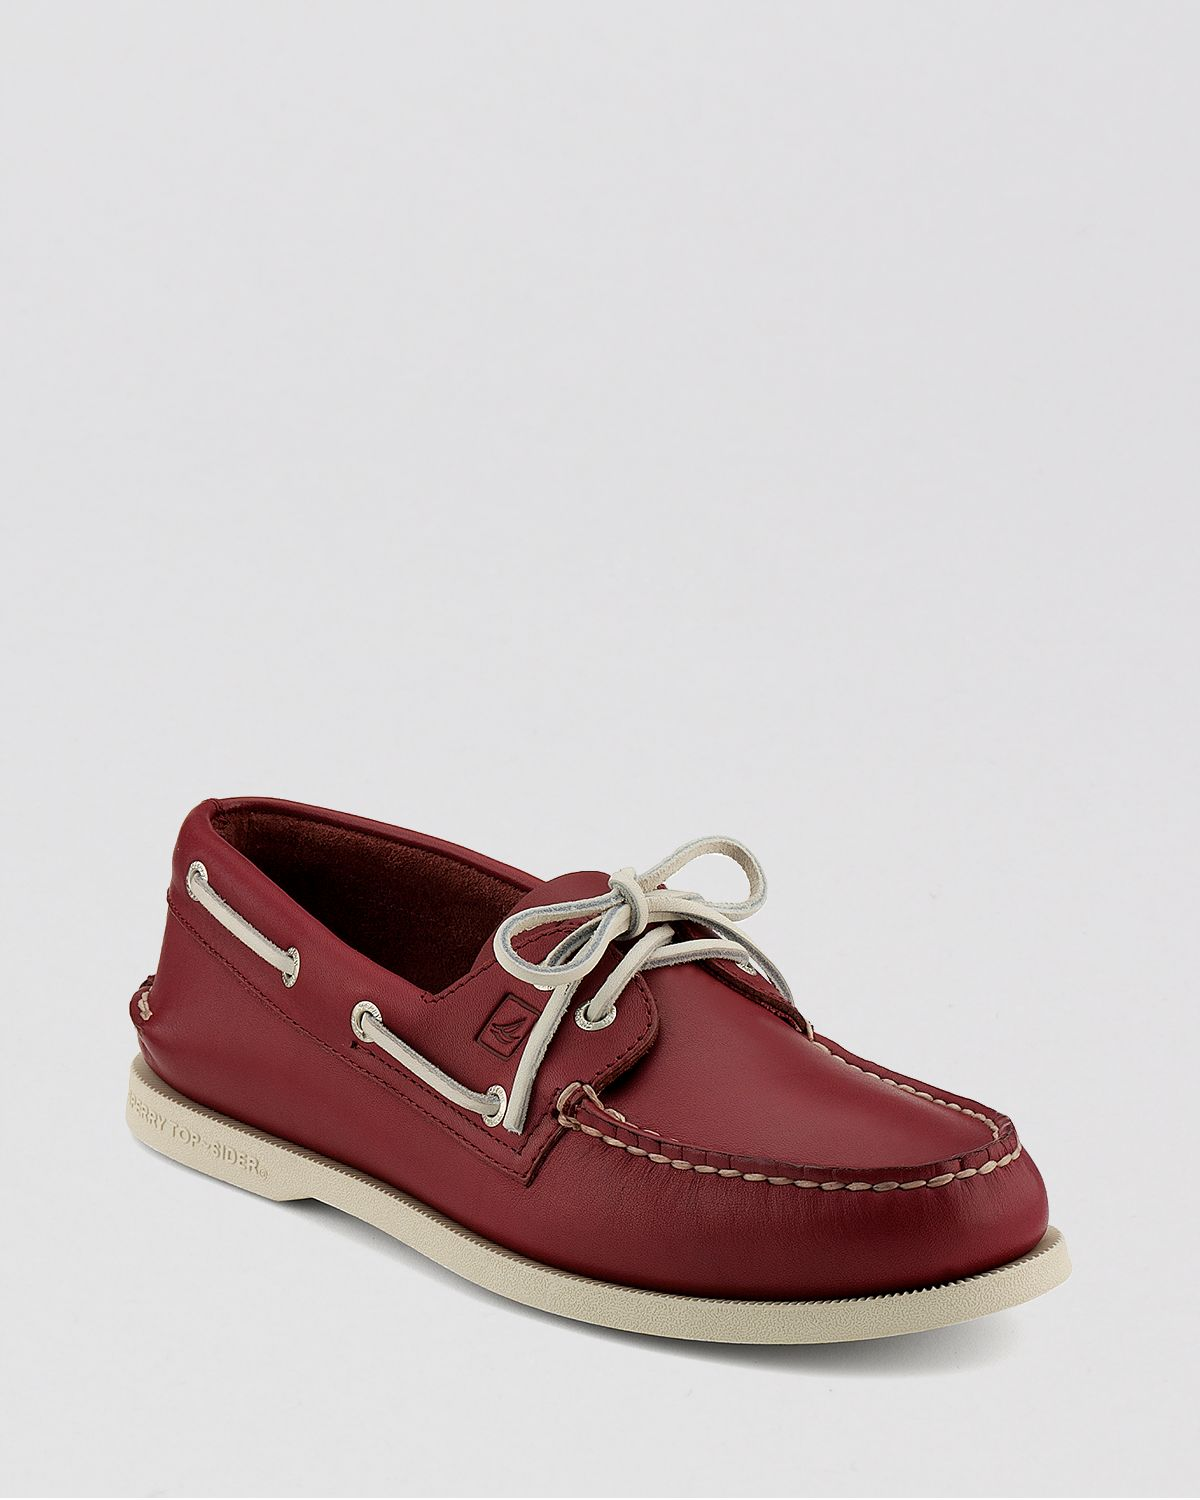 3151caf9c2b Sperry Top-Sider Ao Leather Boat Shoes in Red for Men - Lyst